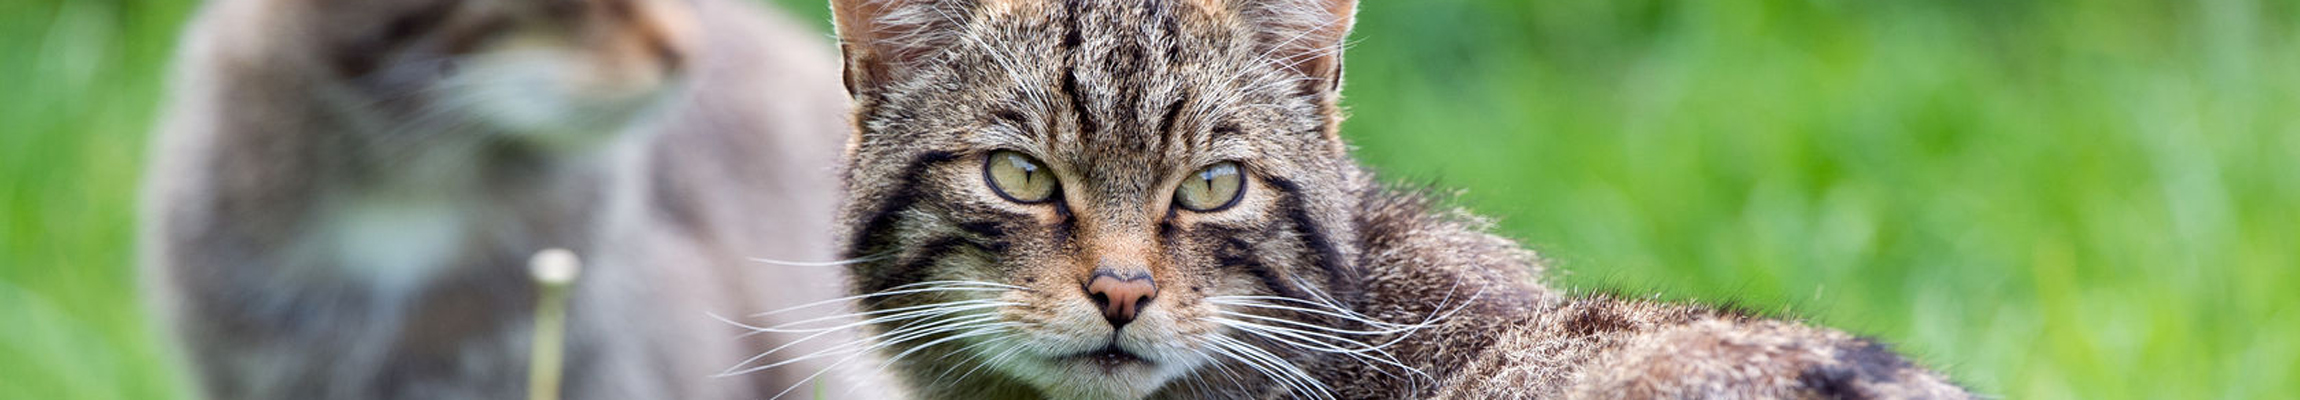 41372961 – scottish wildcat felis silvestris grampia